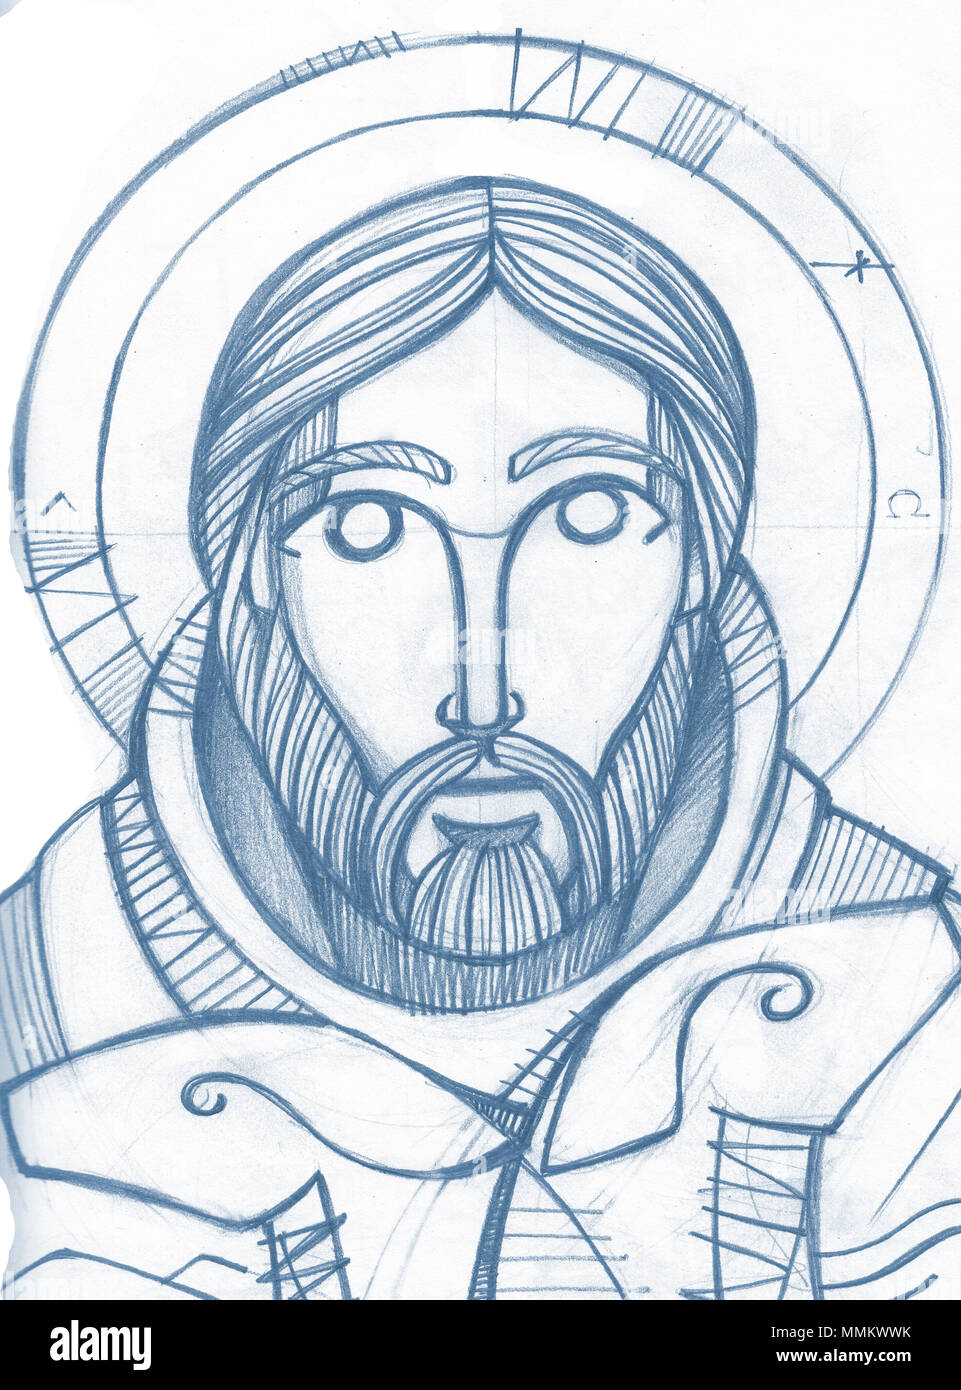 Hand drawn pencil illustration or drawing of jesus christ good